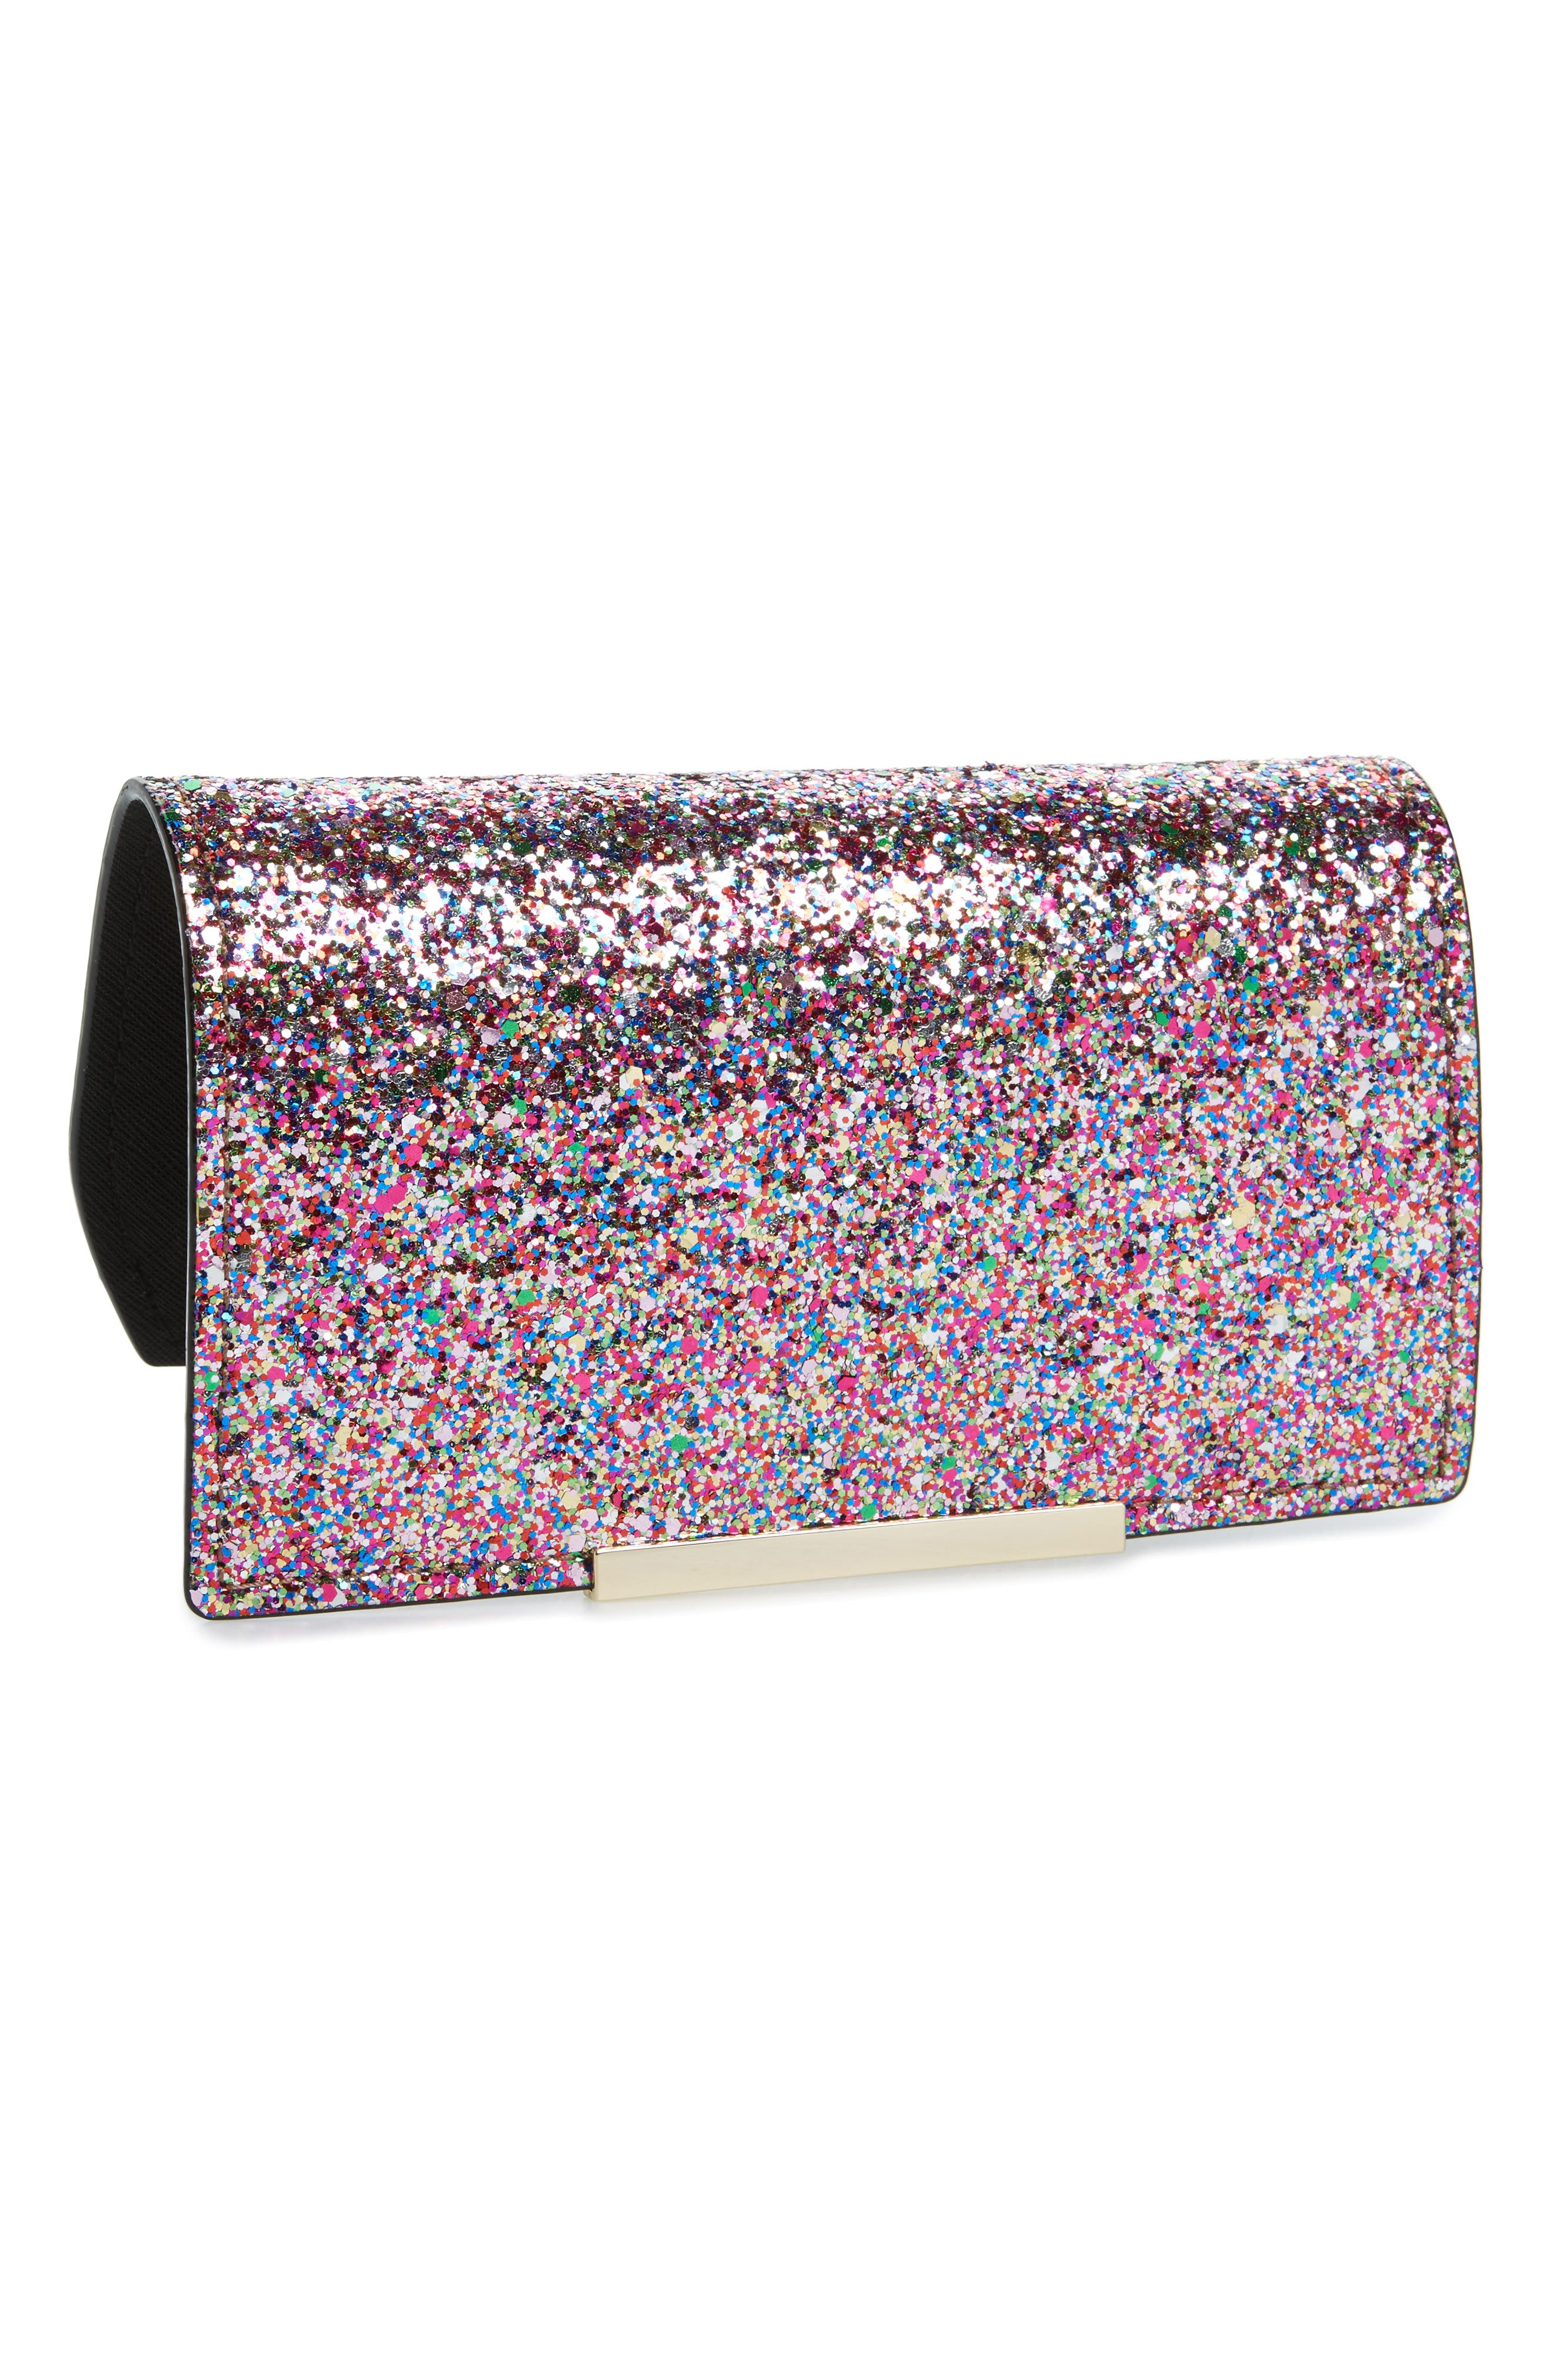 make it mine glitter snap-on accent flap,                             Main thumbnail 1, color,                             650